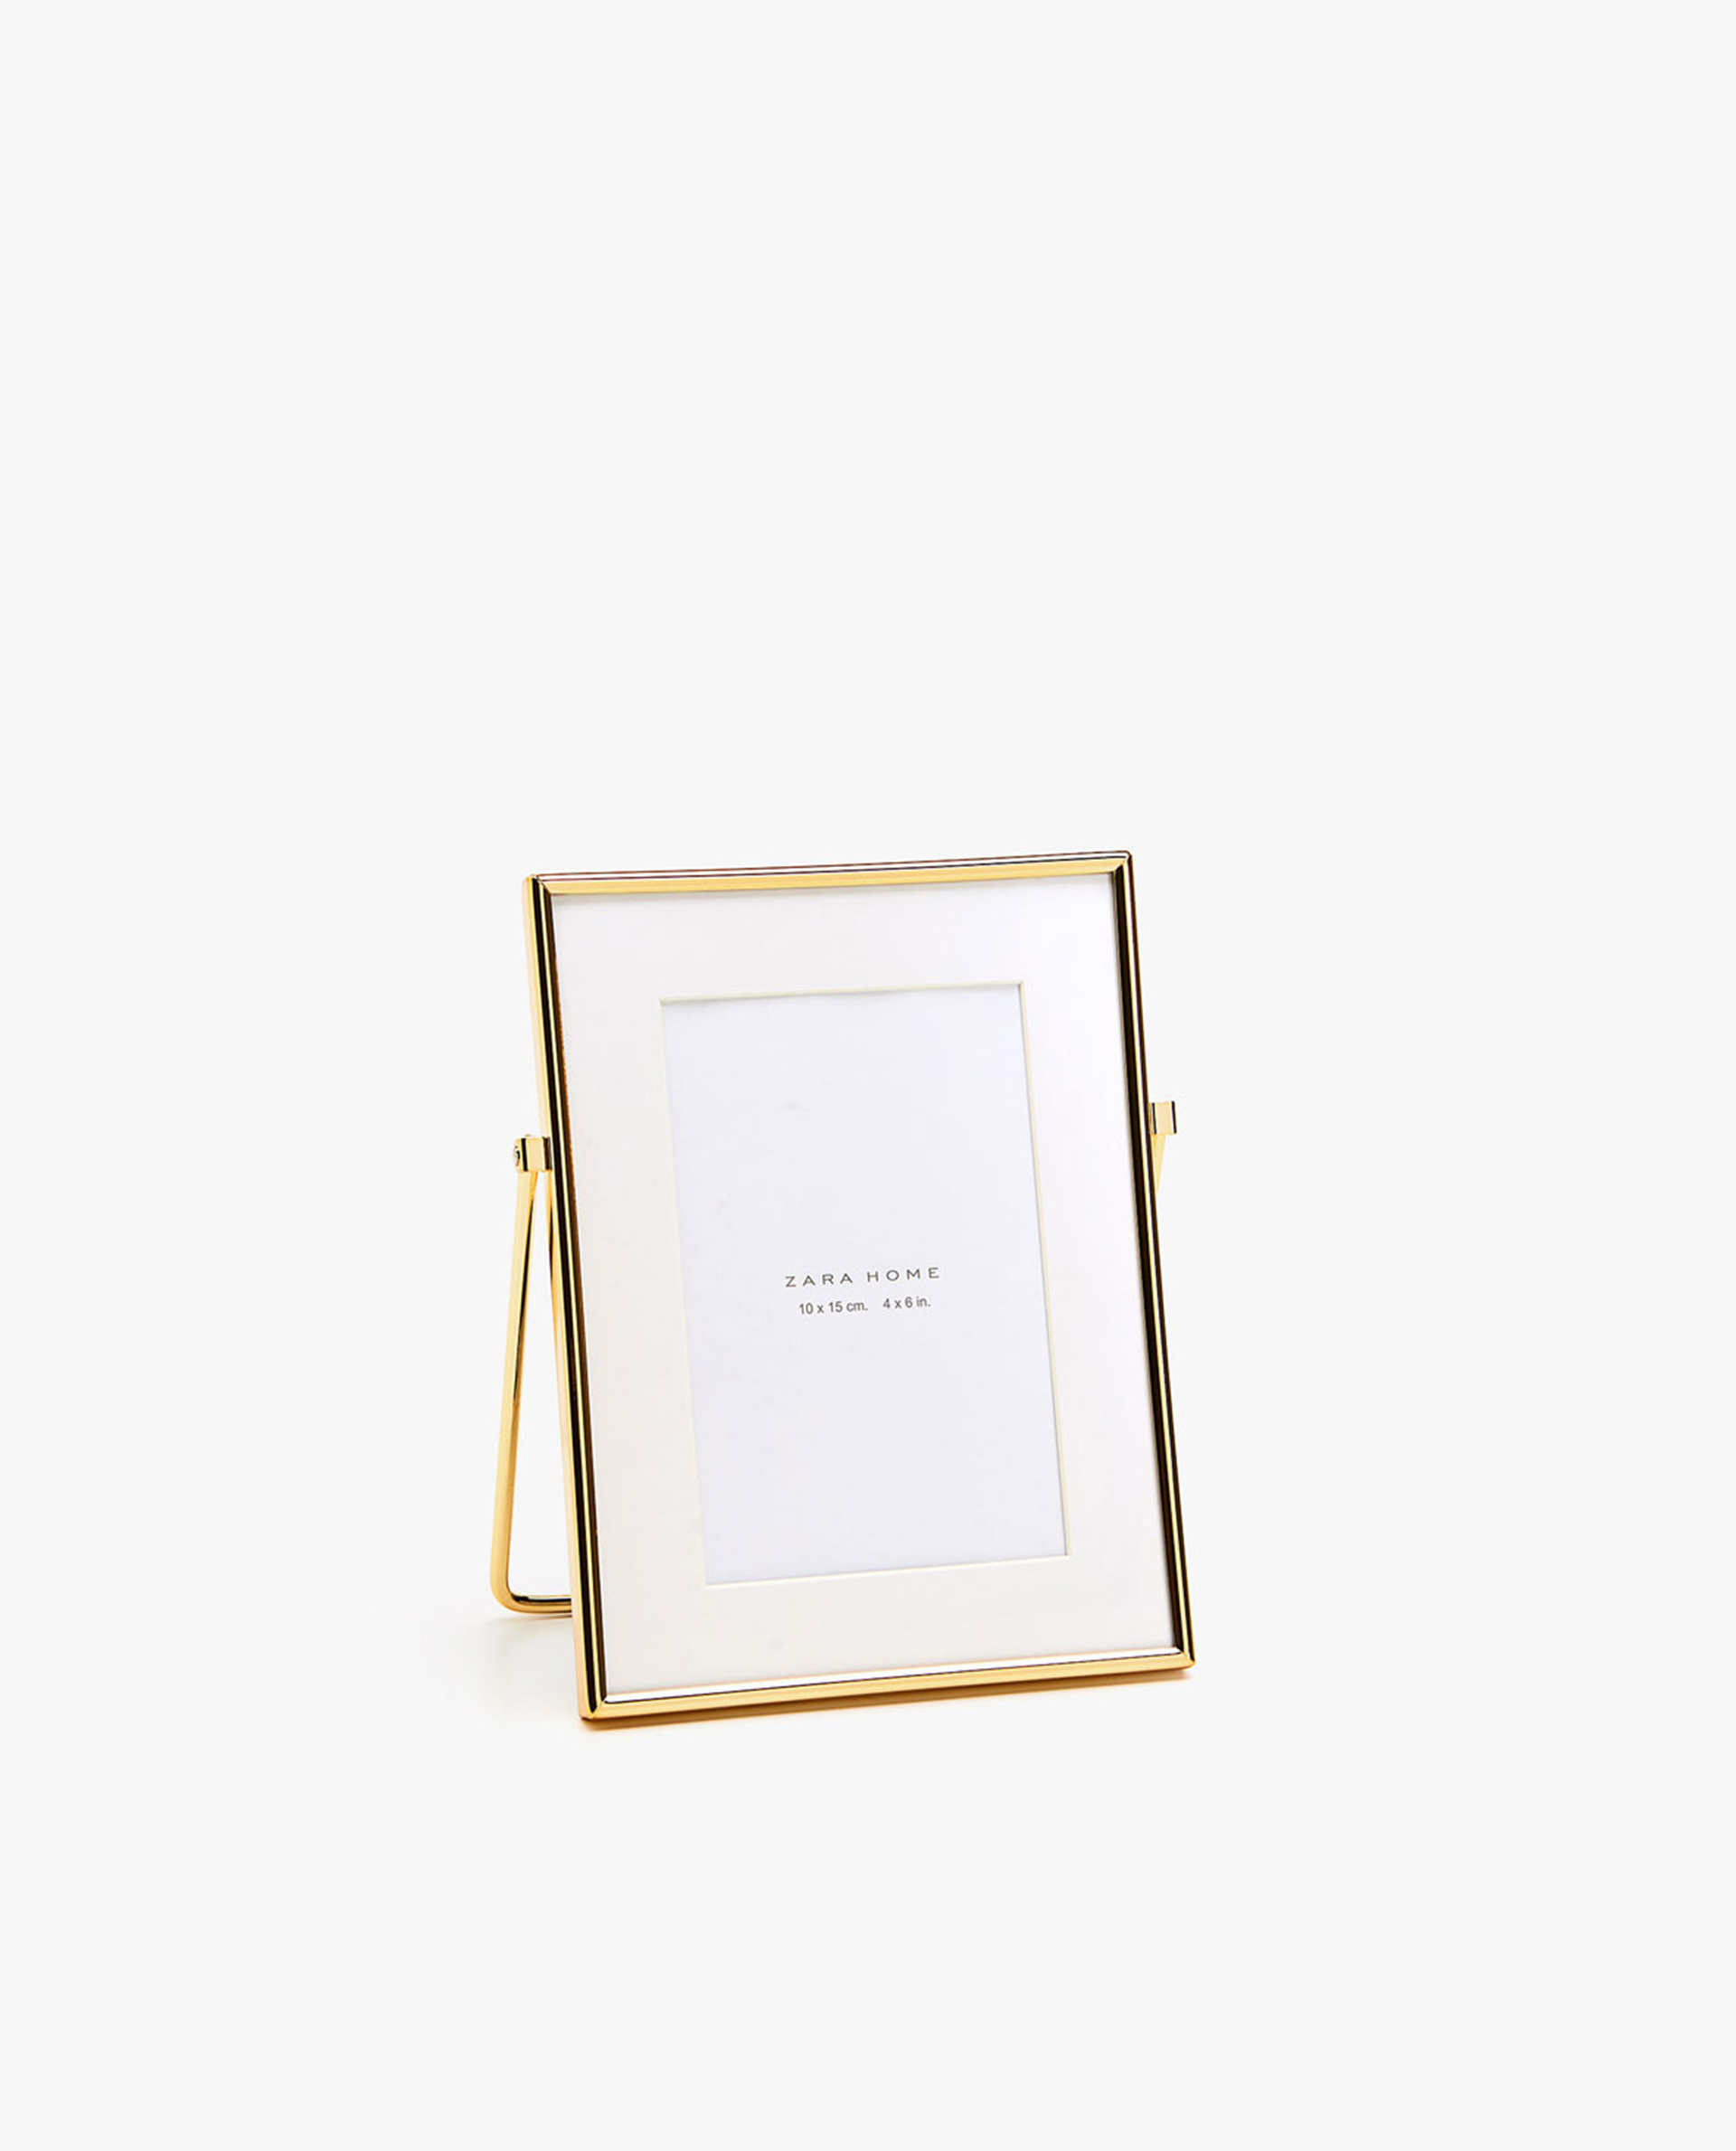 372263639a57 Gold easel frame - See all - PHOTO FRAMES - DECORATION